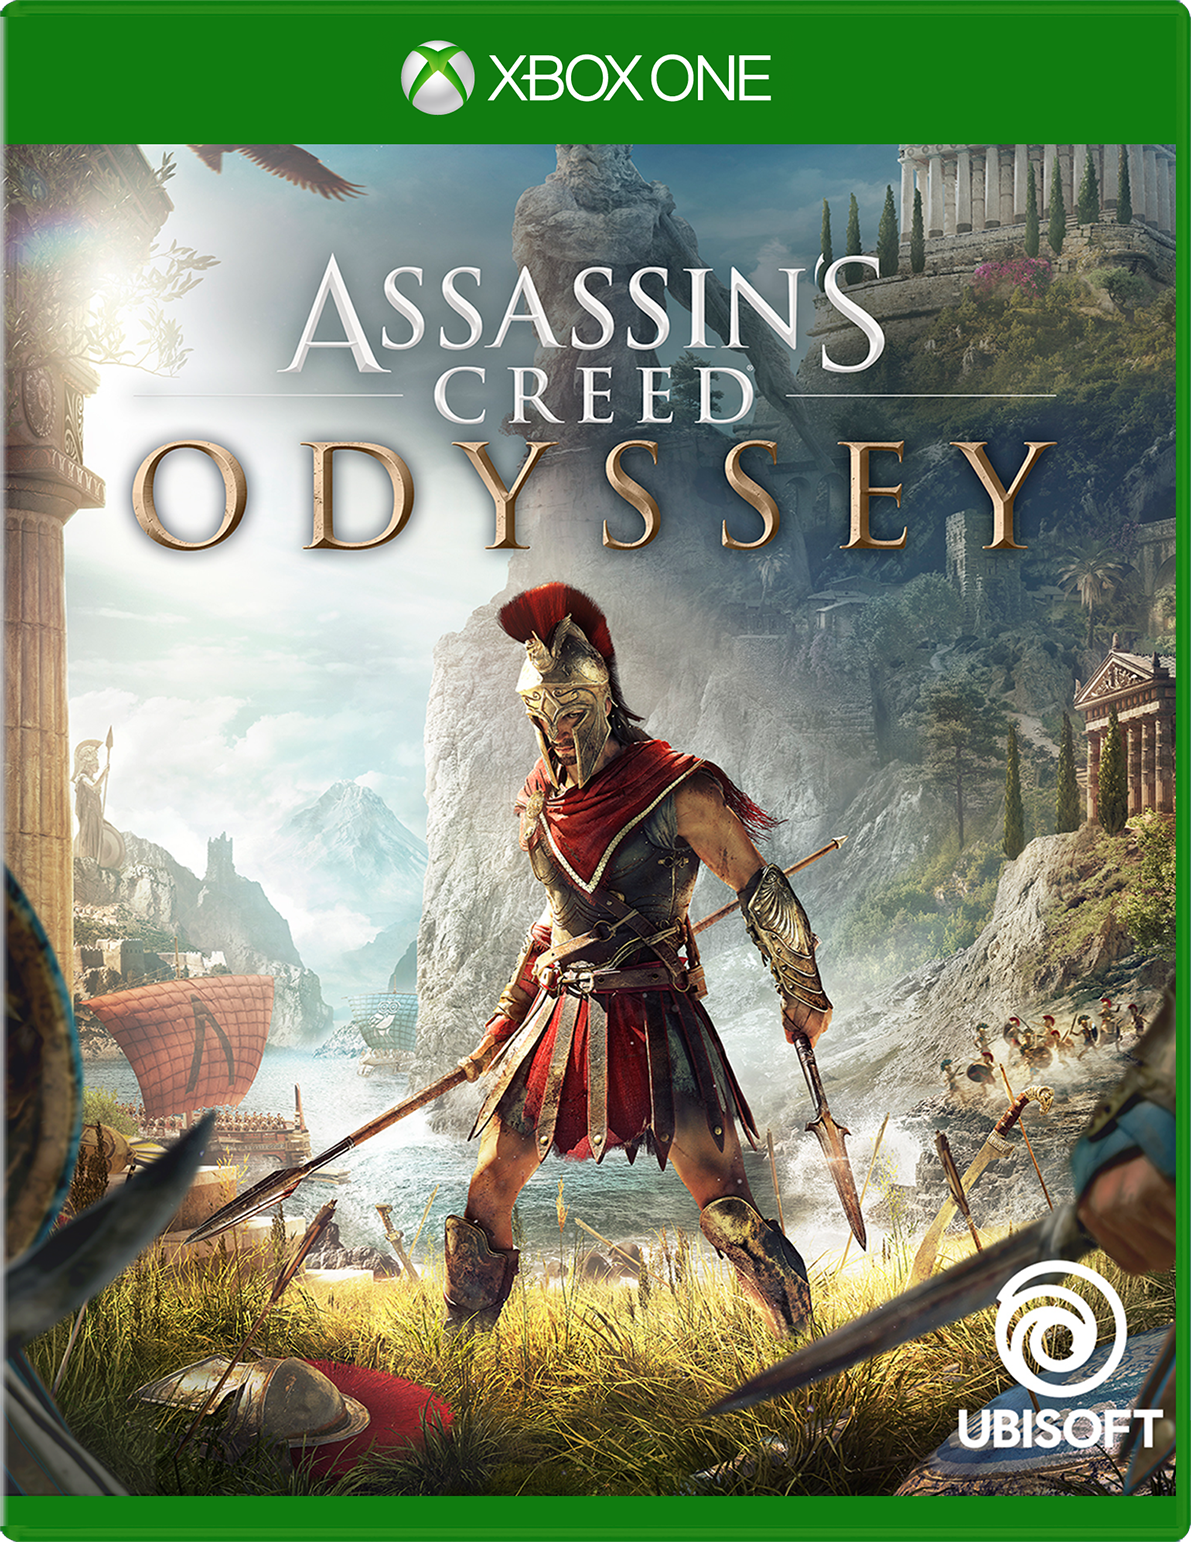 Pin by NoneButDeals on XBOX One Games For Kids | Assassins creed